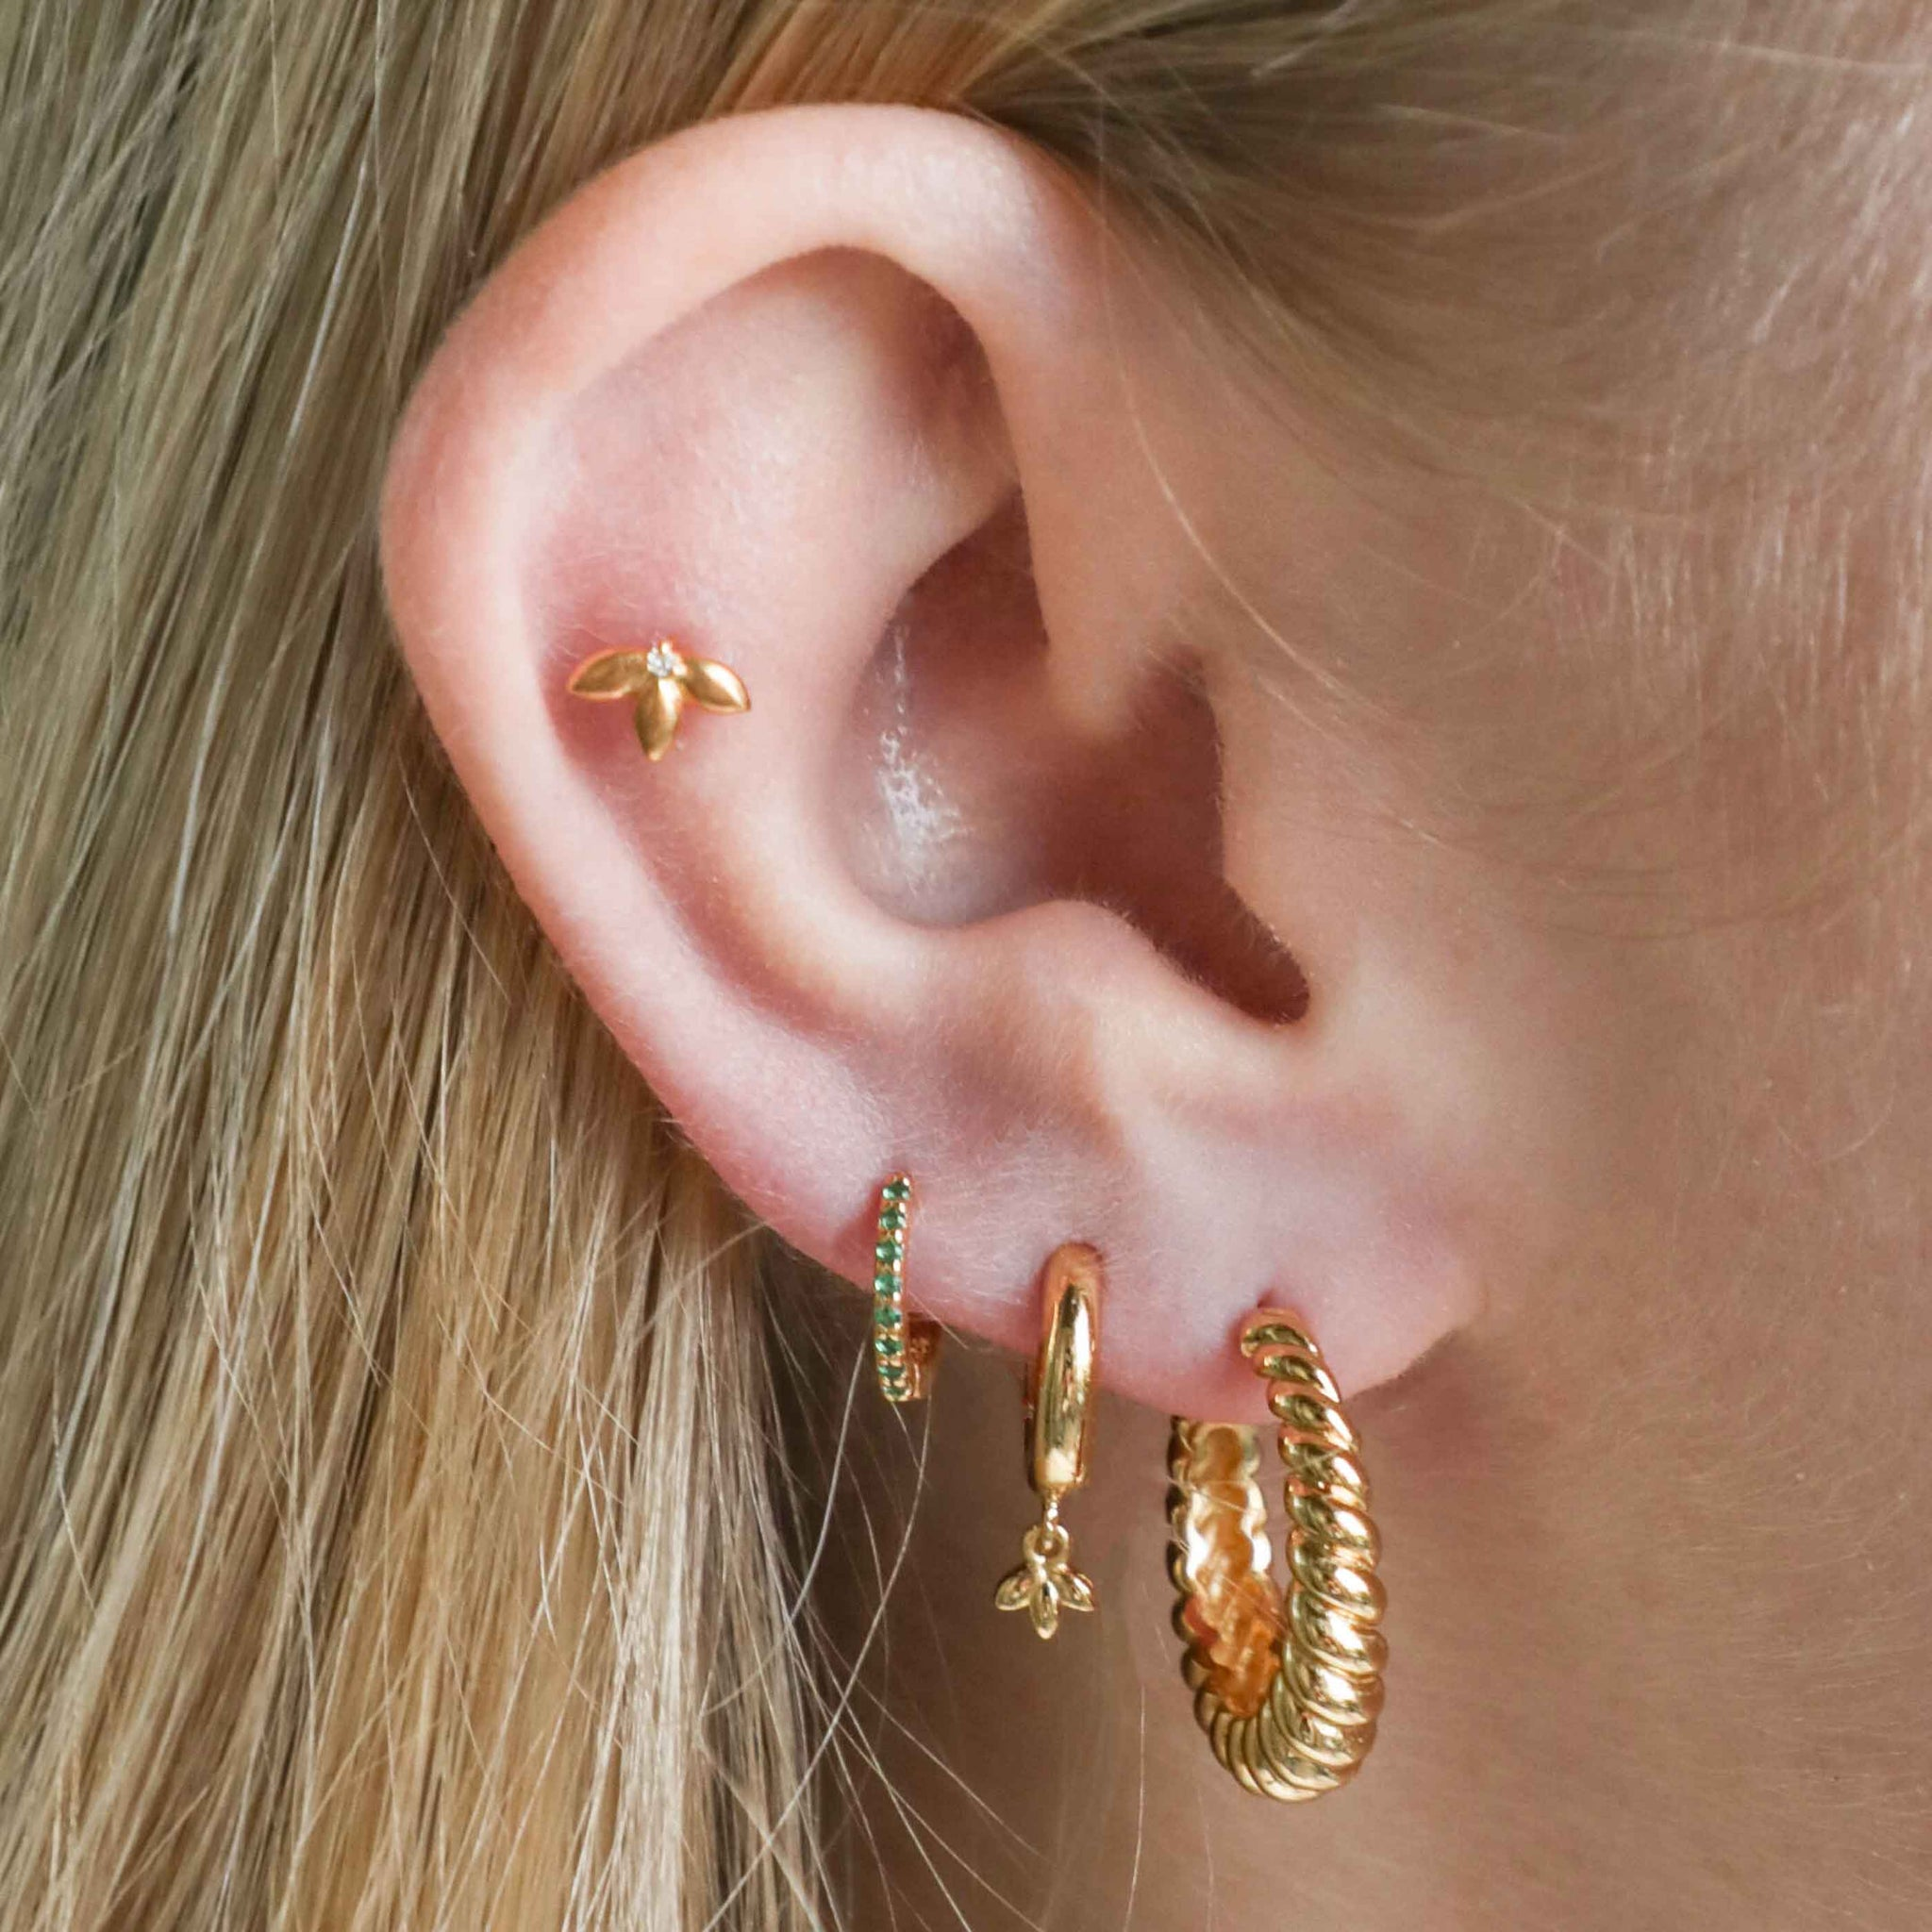 Botanist Barbell in Gold worn in outer conch piercing